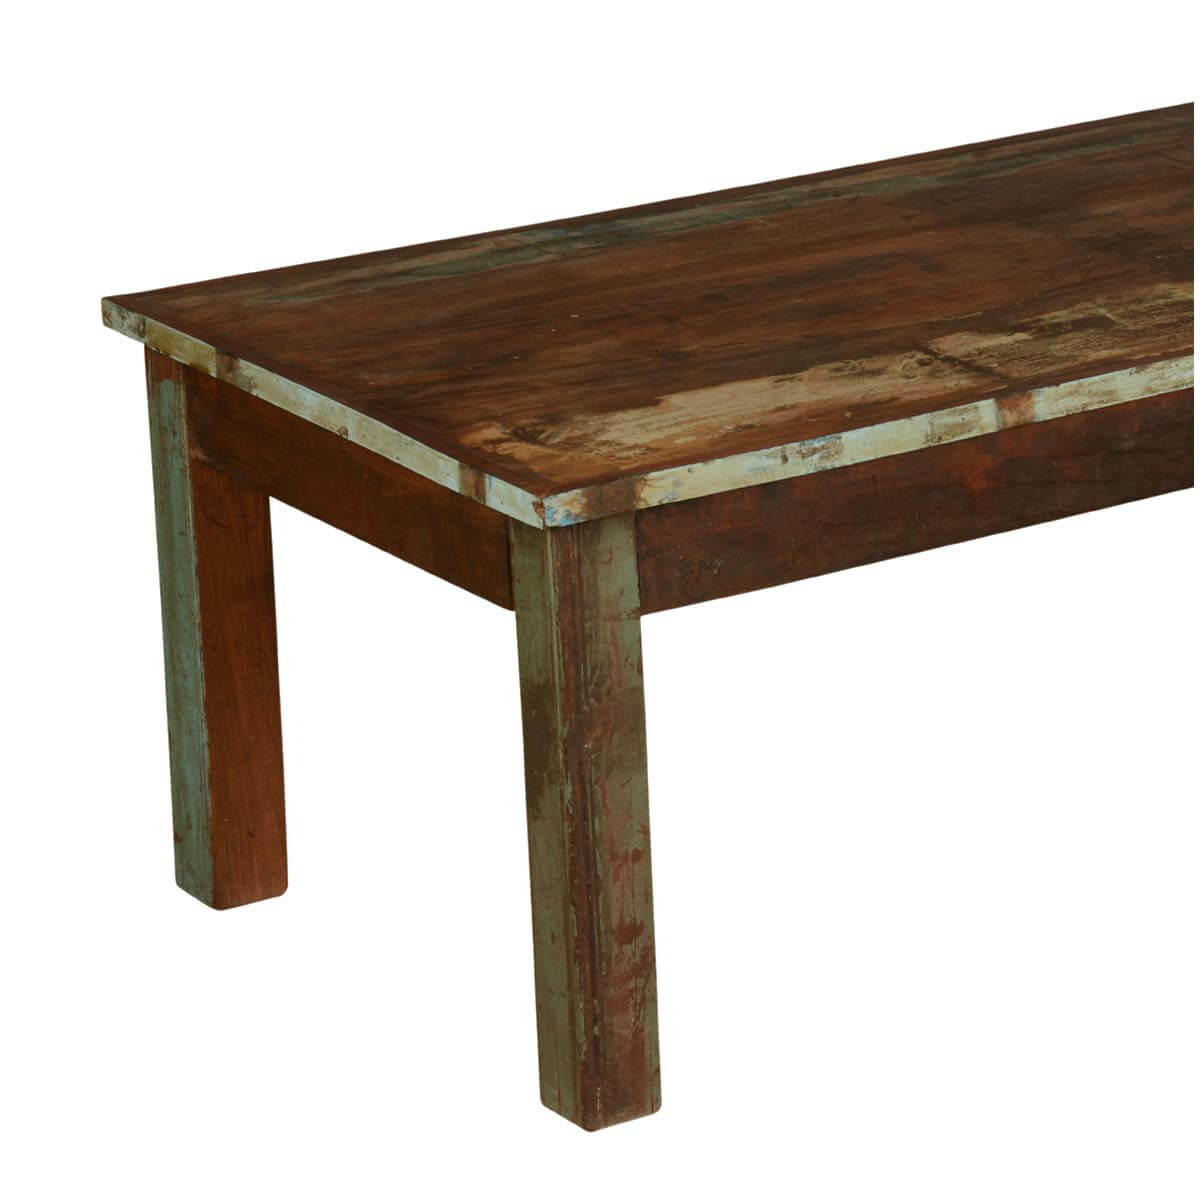 Farmhouse distressed reclaimed wood rustic coffee table for Reclaimed coffee table